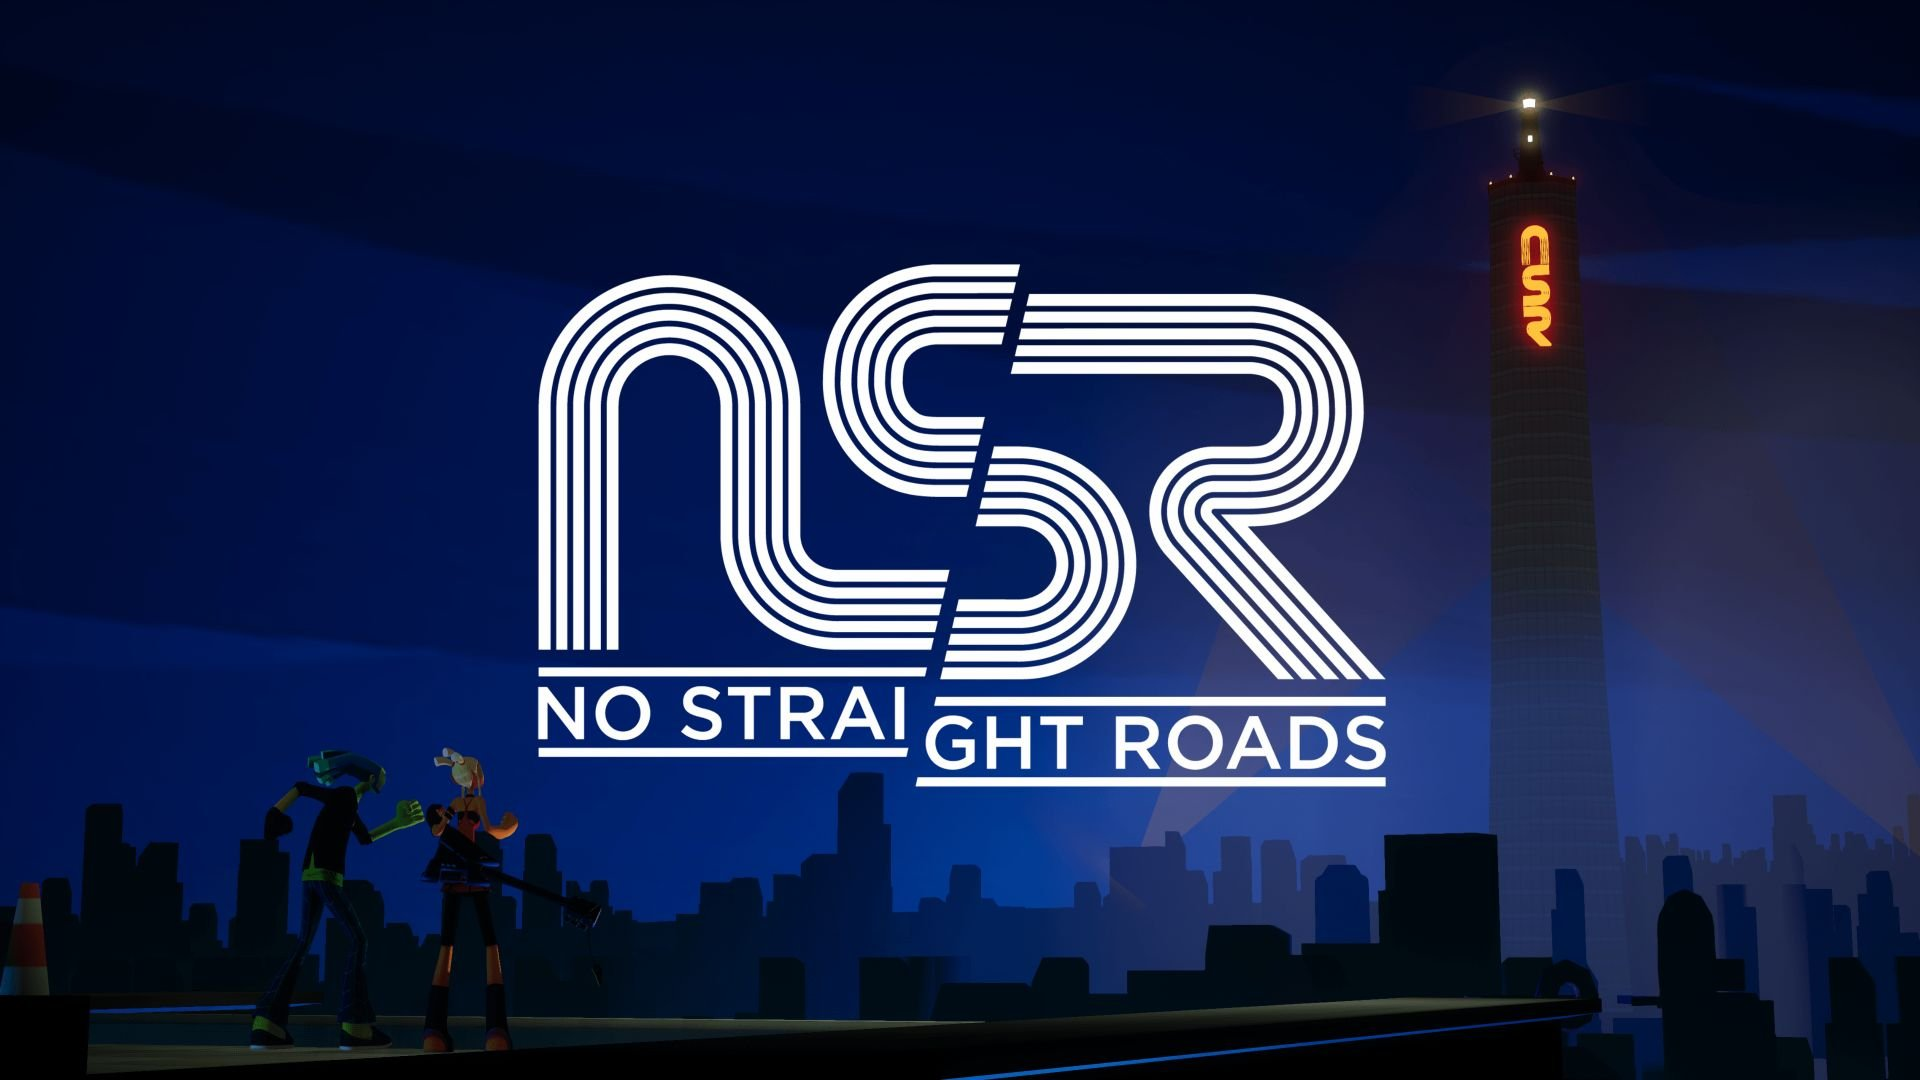 No Straight Roads - Featured Image